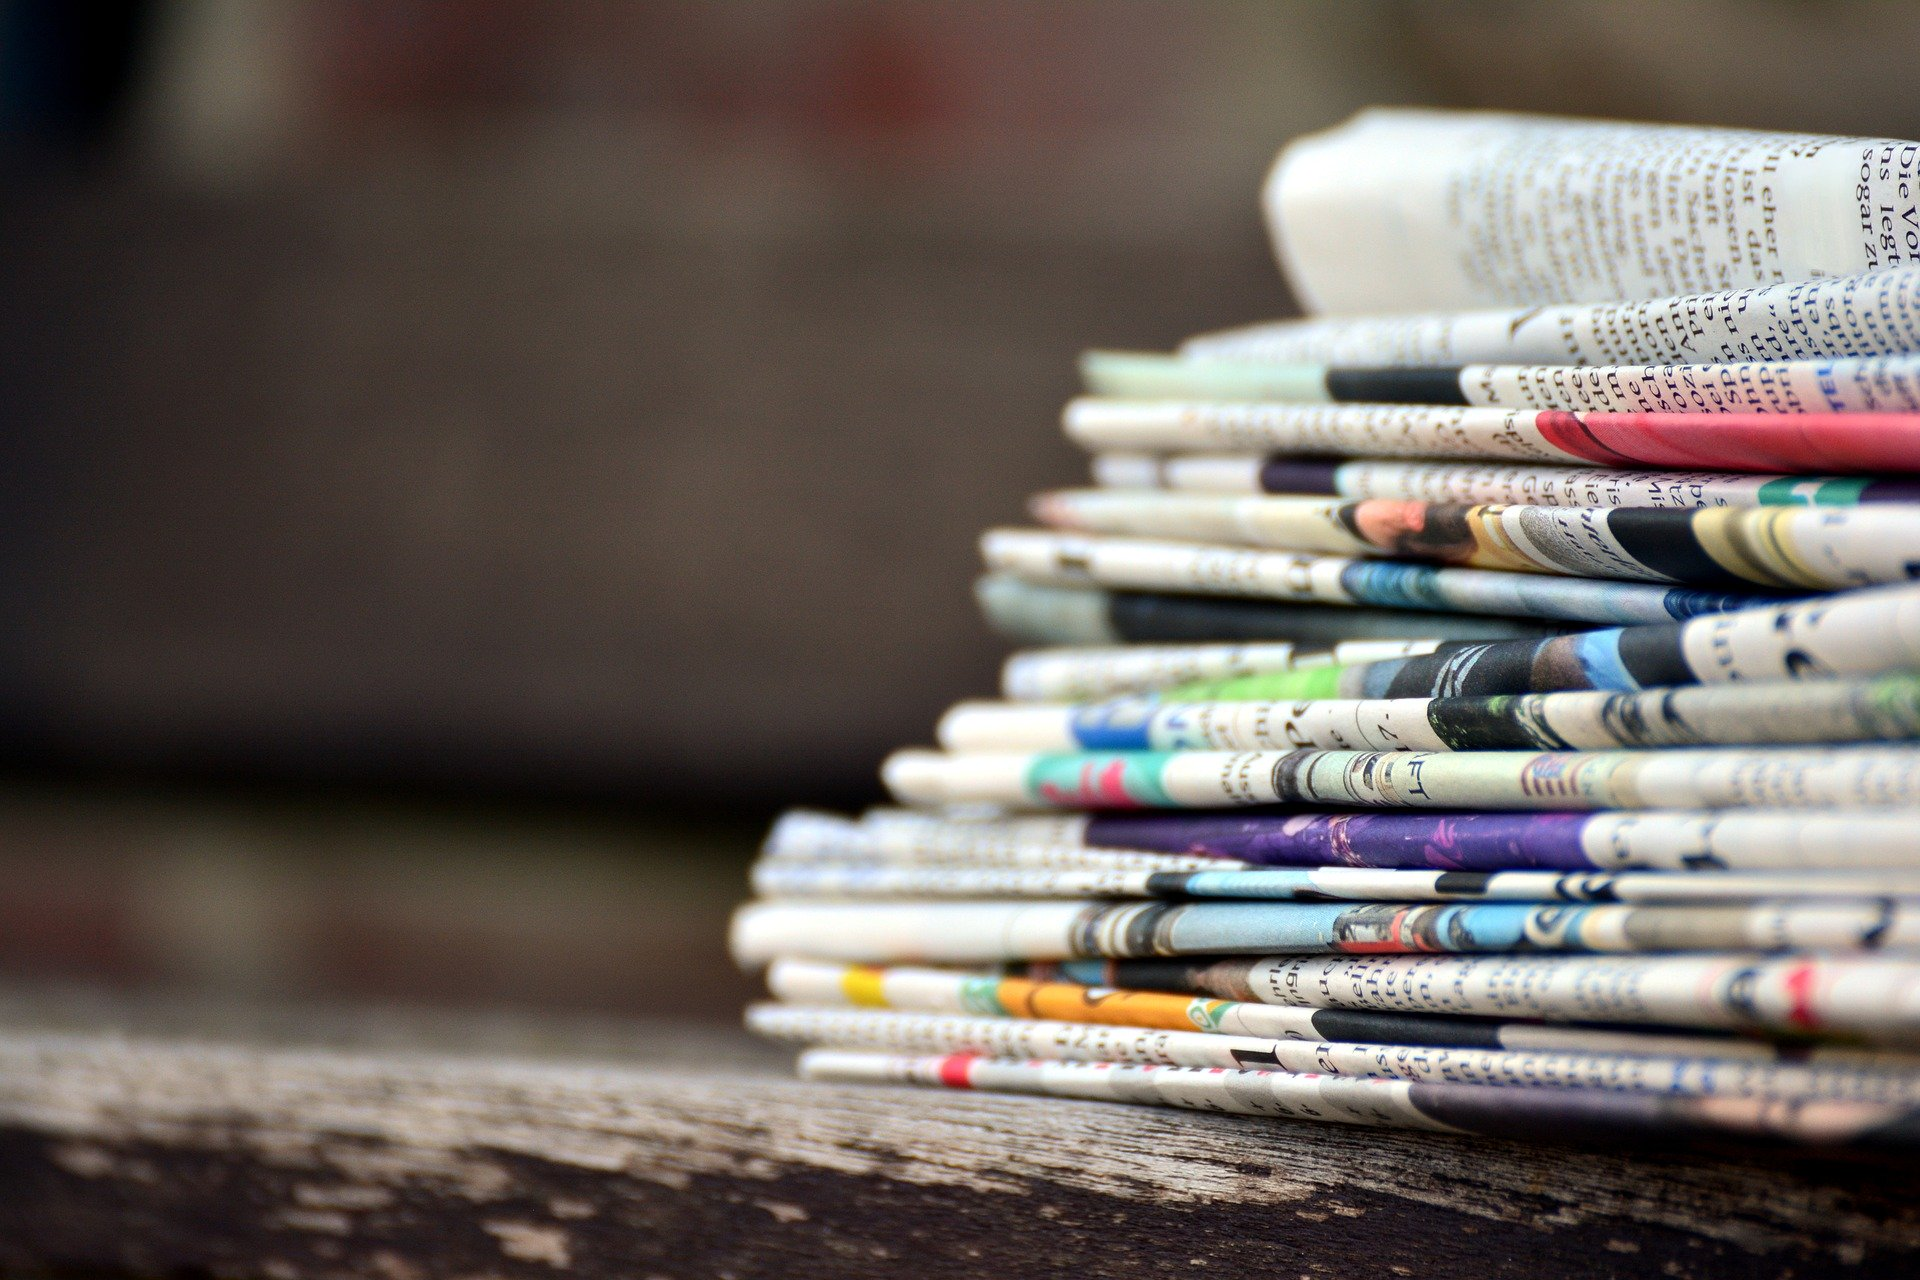 Stack of folded newspapers sits in right hand